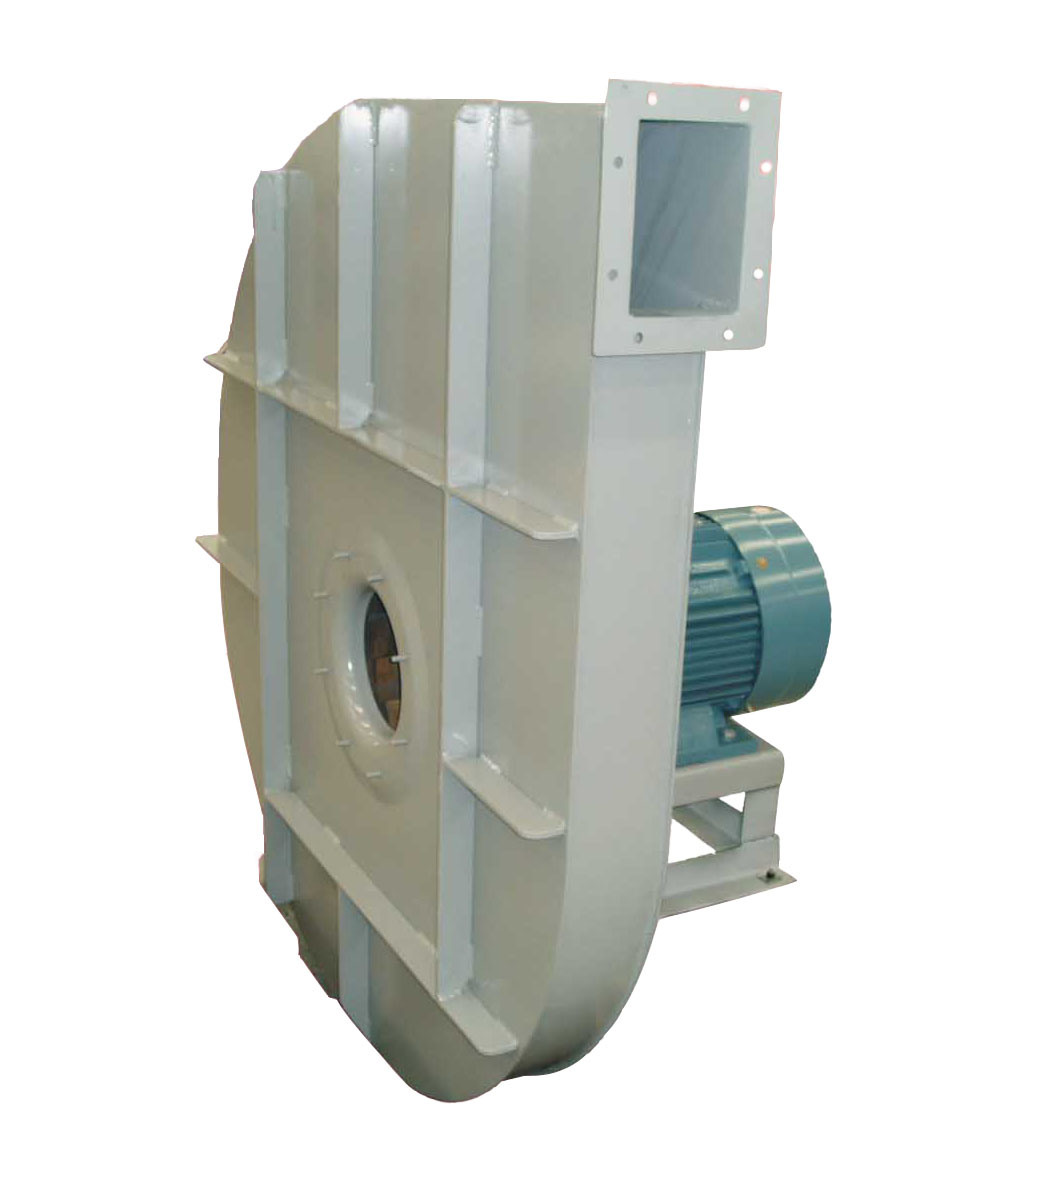 High Pressure Centrifugal Blowers : China direct drive high pressure centrifugal fan